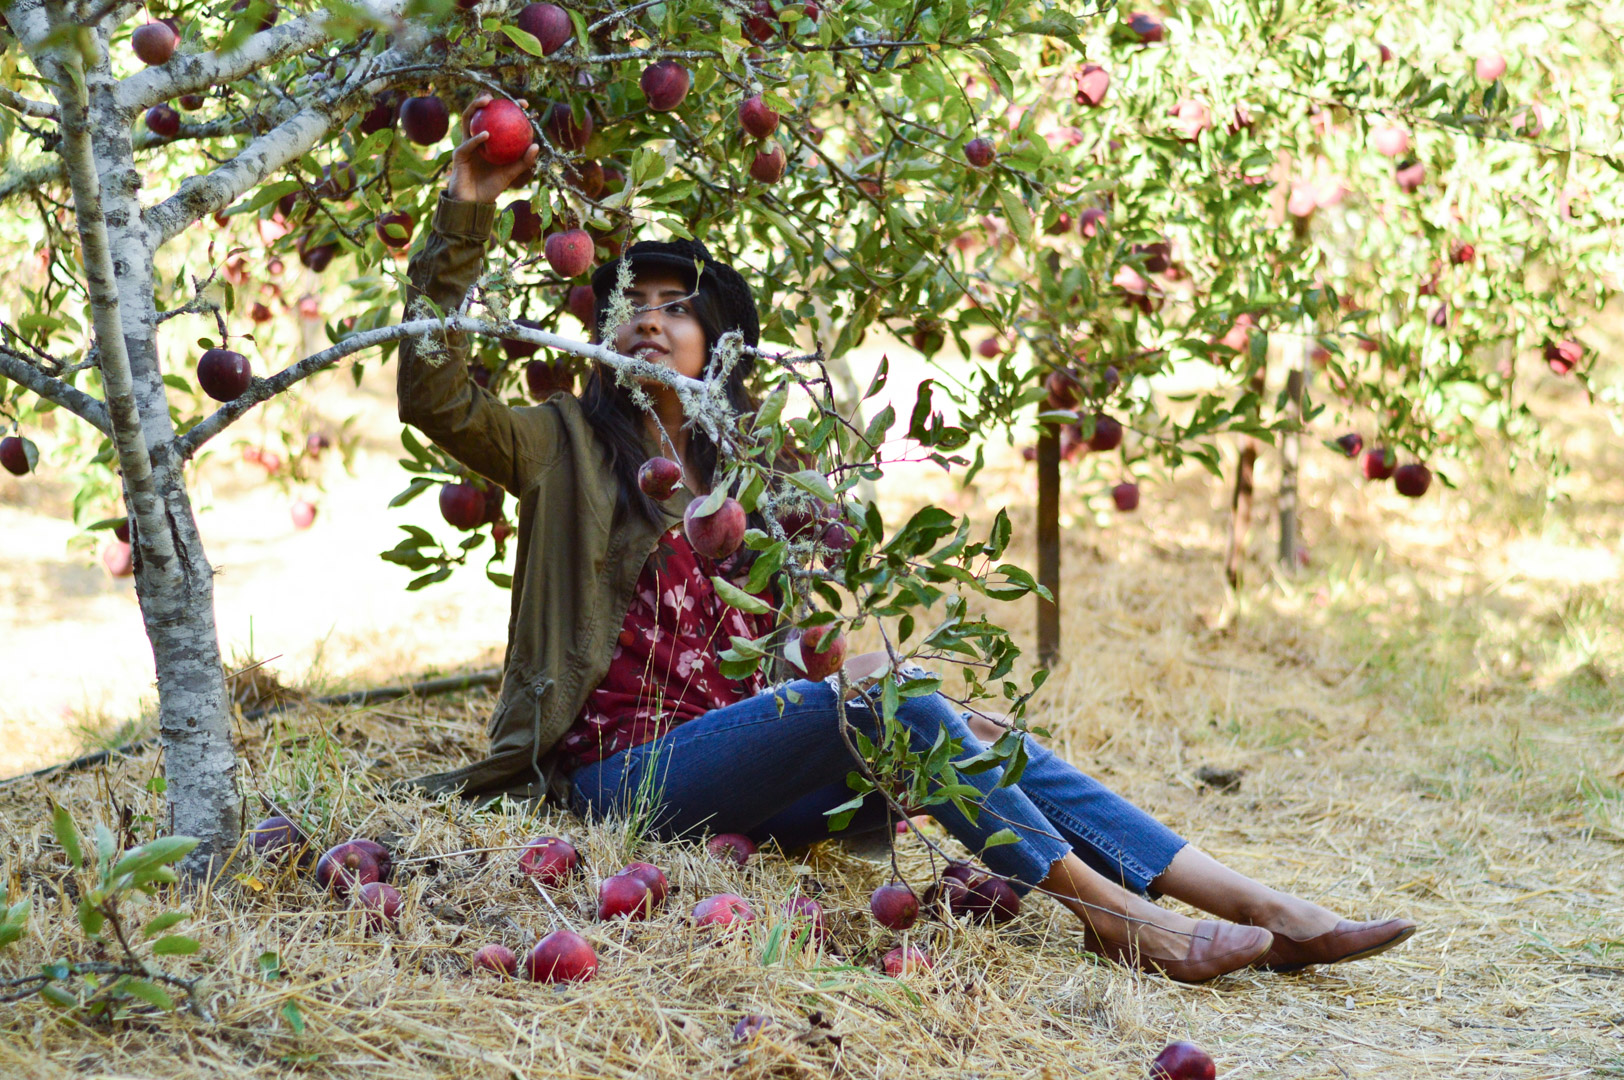 apple-picking-fall-florals-utility-jacket-california-style-fall-activities 7